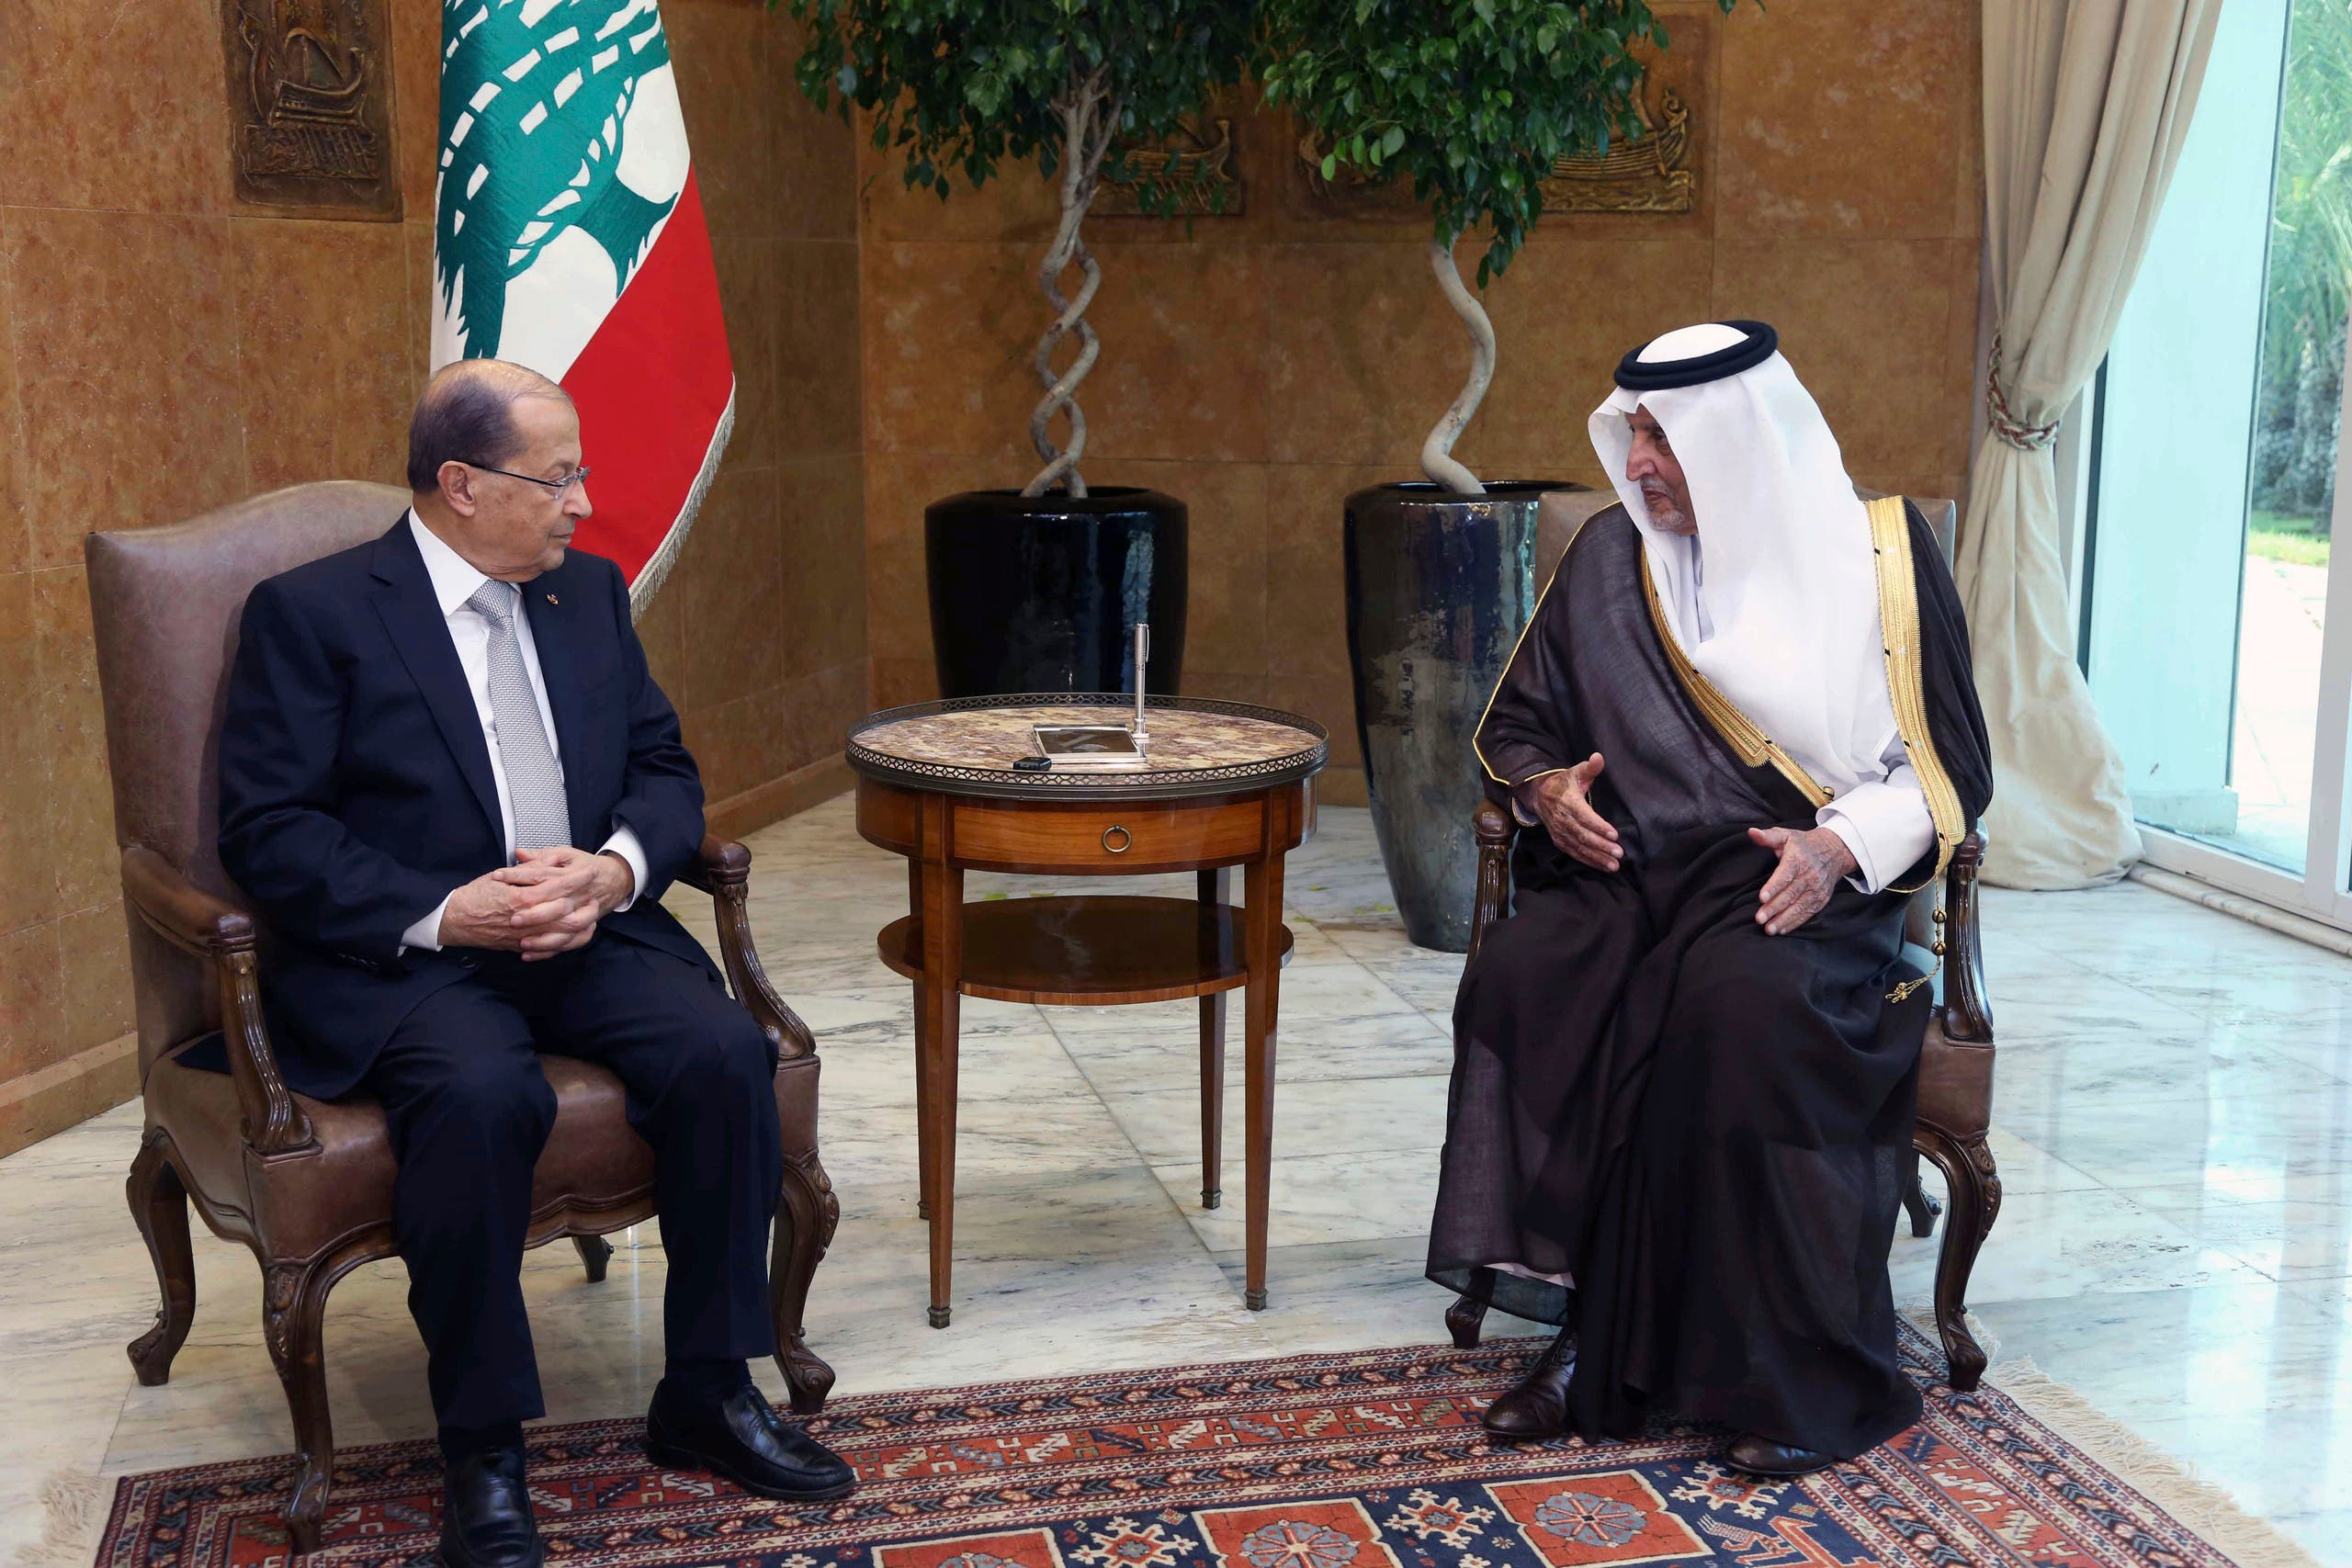 In this photo released by Lebanon's official government photographer Dalati Nohra, Lebanese President Michel Aoun, left, meets with Saudi Arabia's Prince Khaled al-Faisal, at the Presidential Palace in Baabda, east of Beirut, Lebanon, Monday, Nov. 21, 2016. (AP)